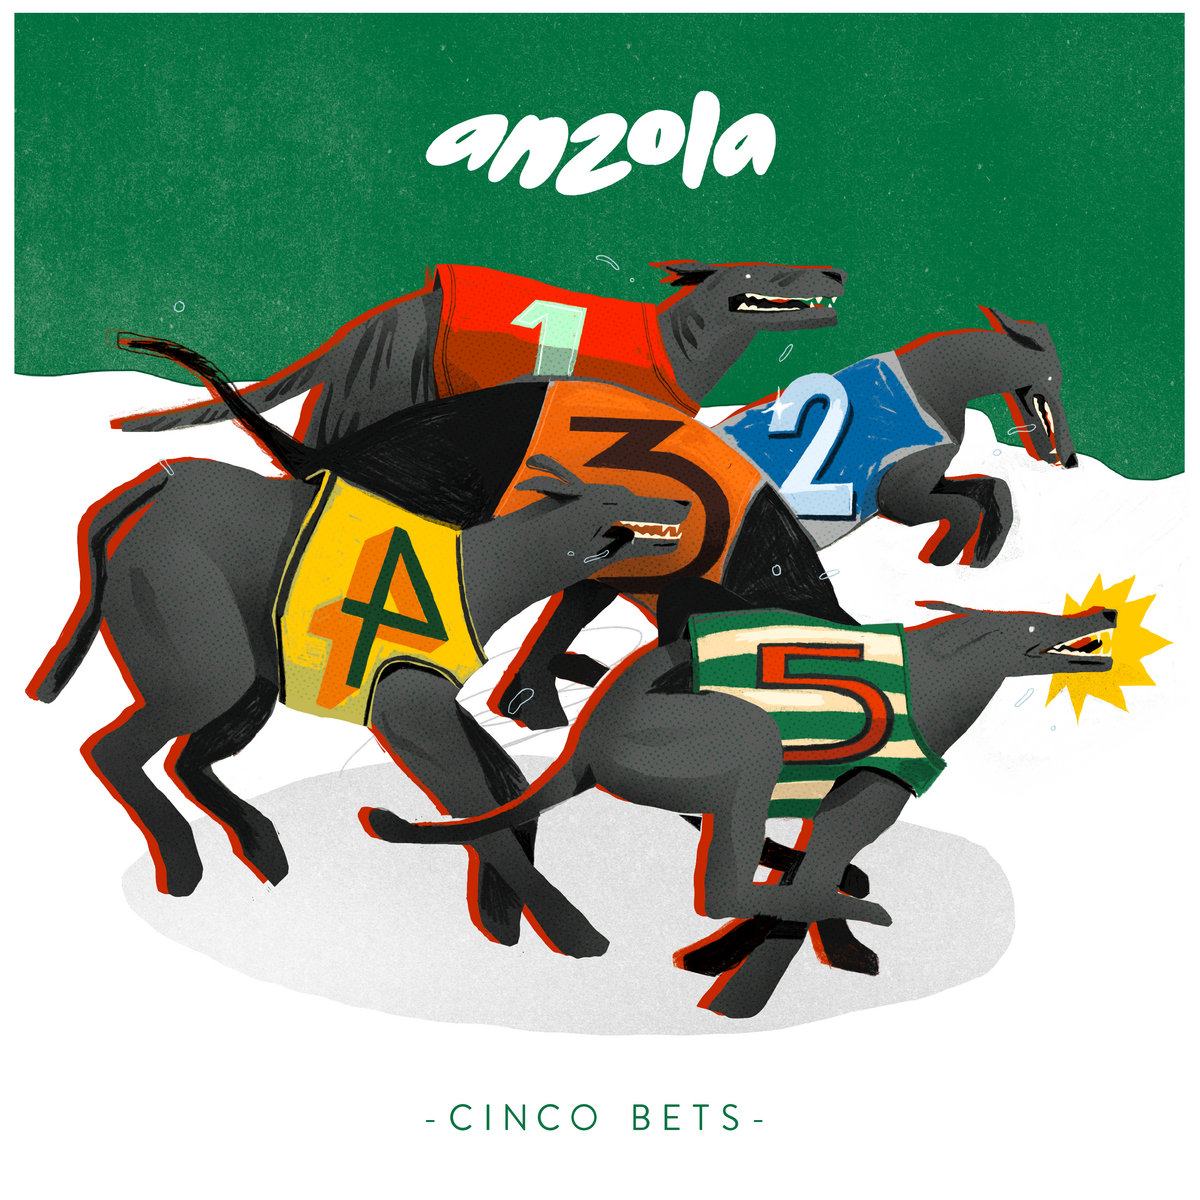 Cinco Bets by Anzola